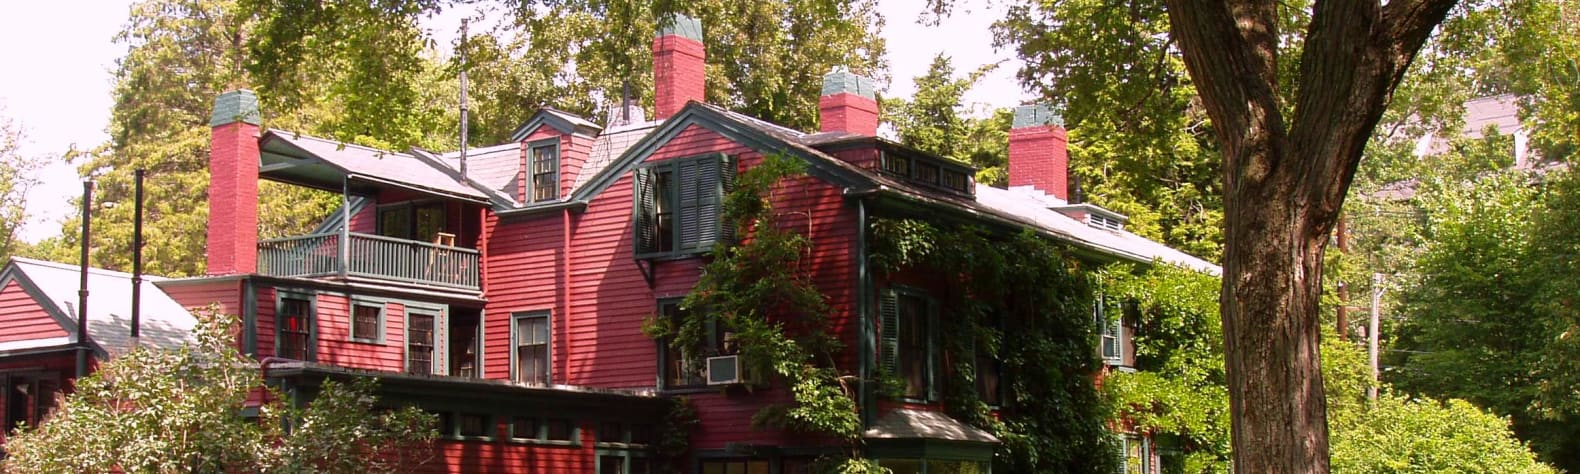 Frederick Law Olmsted National Historic Site